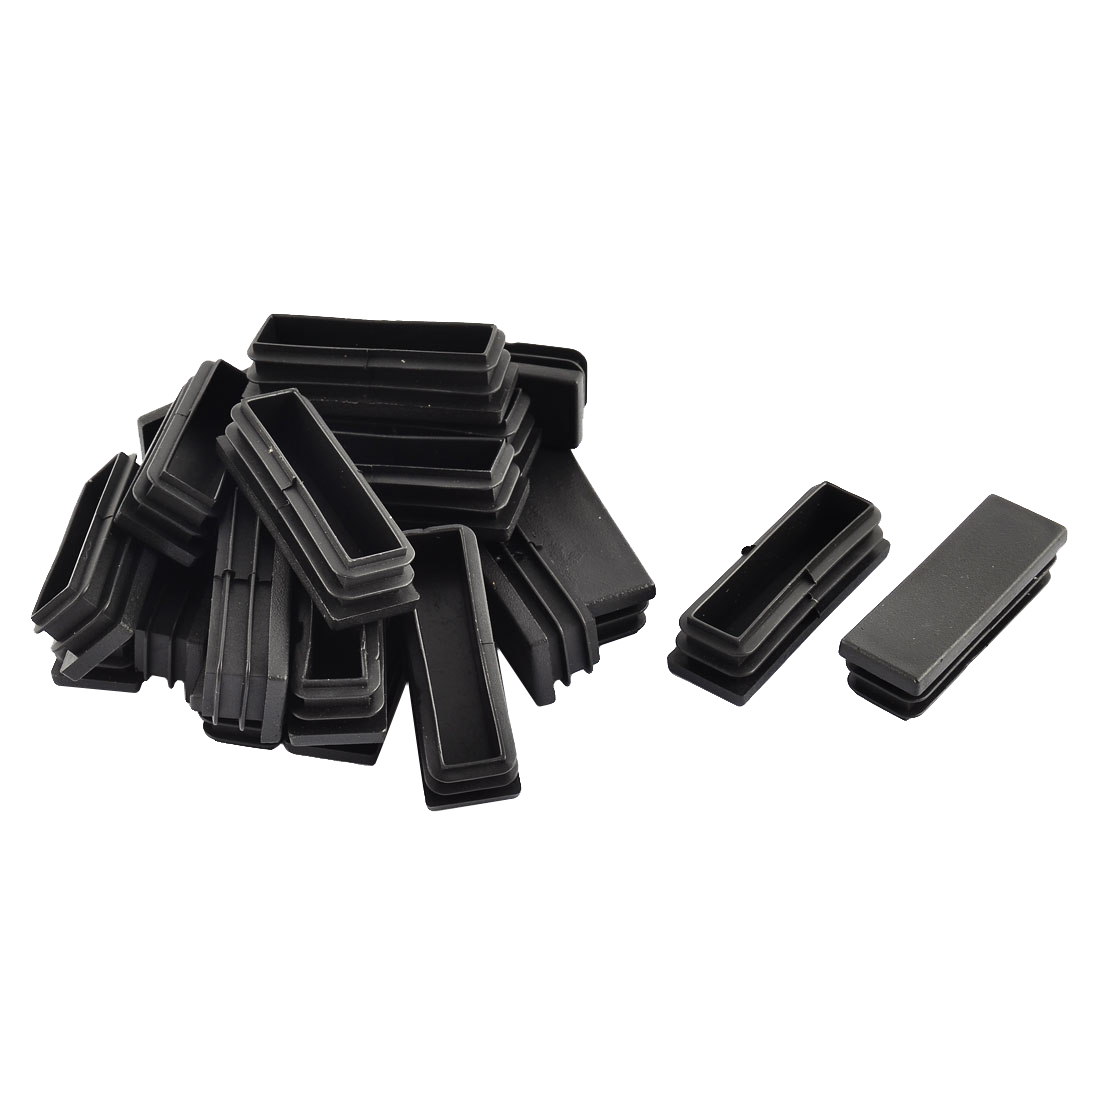 Floor No Dent Protective Rectangle Chair Leg Pipe Tube Insert Black 59 x 19mm 20pcs